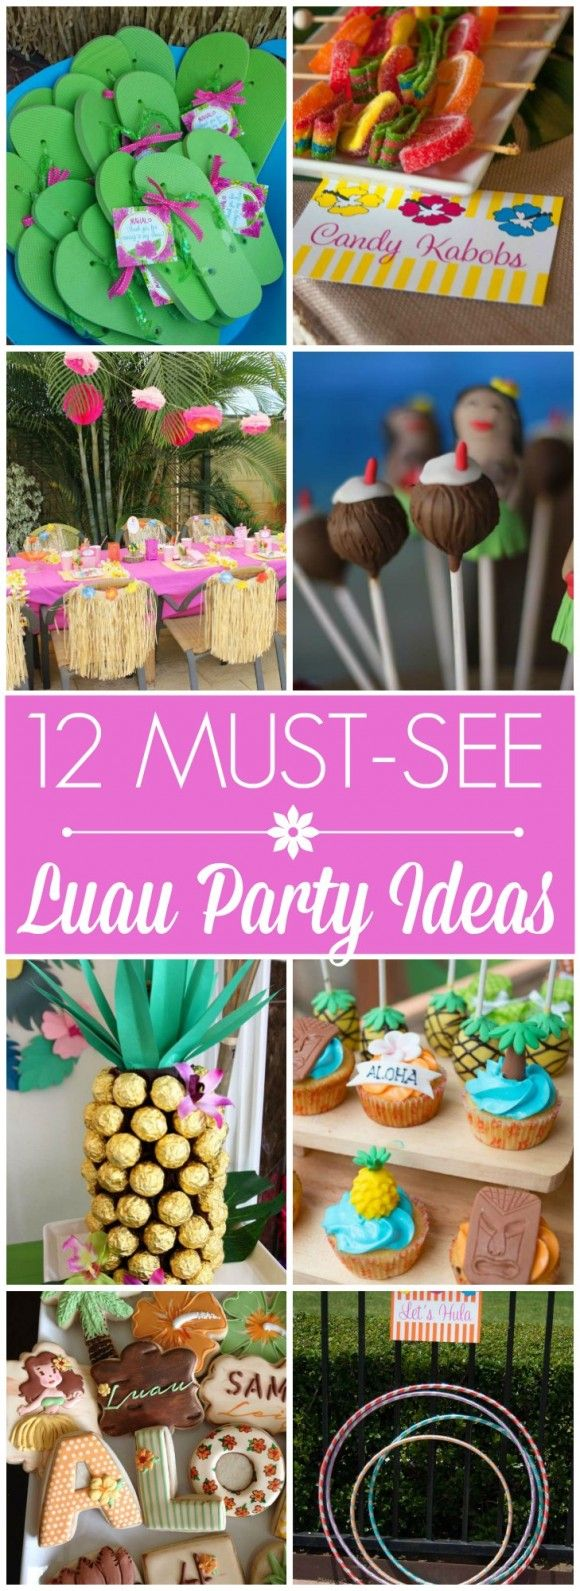 12 Must-See Luau Party Ideas including desserts, decorations, party favors, party activities, and more! | CatchMyParty.com